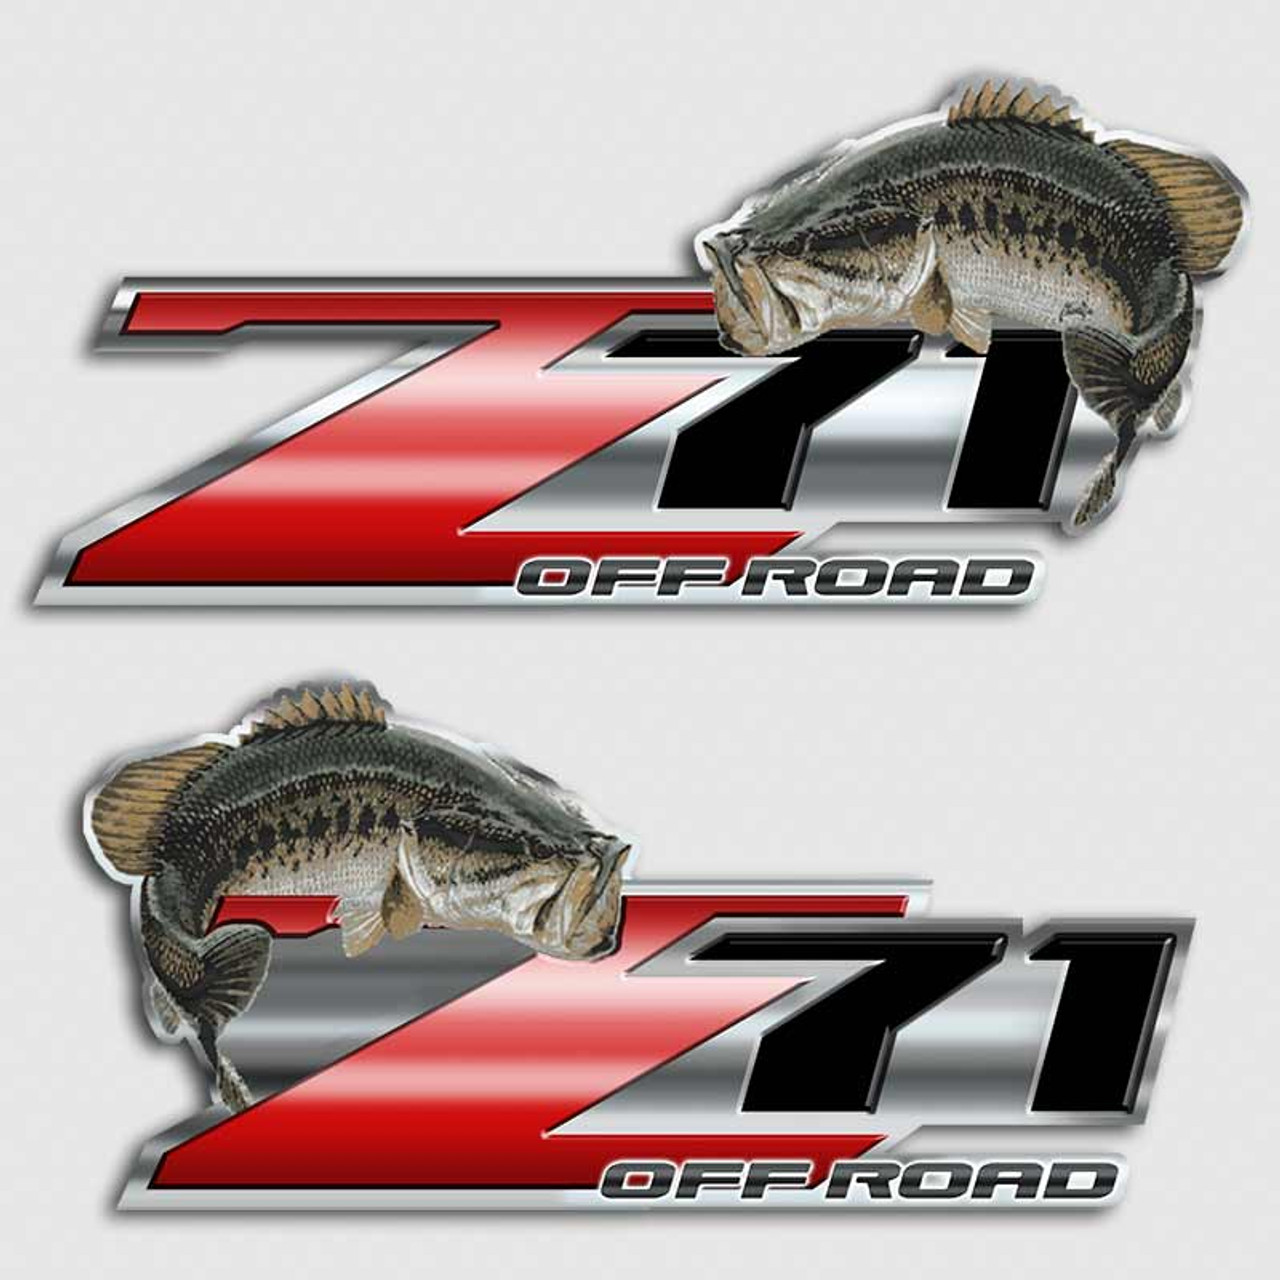 Bass Fishing Z71 Chevy Truck Decal Silverado Fish Sticker